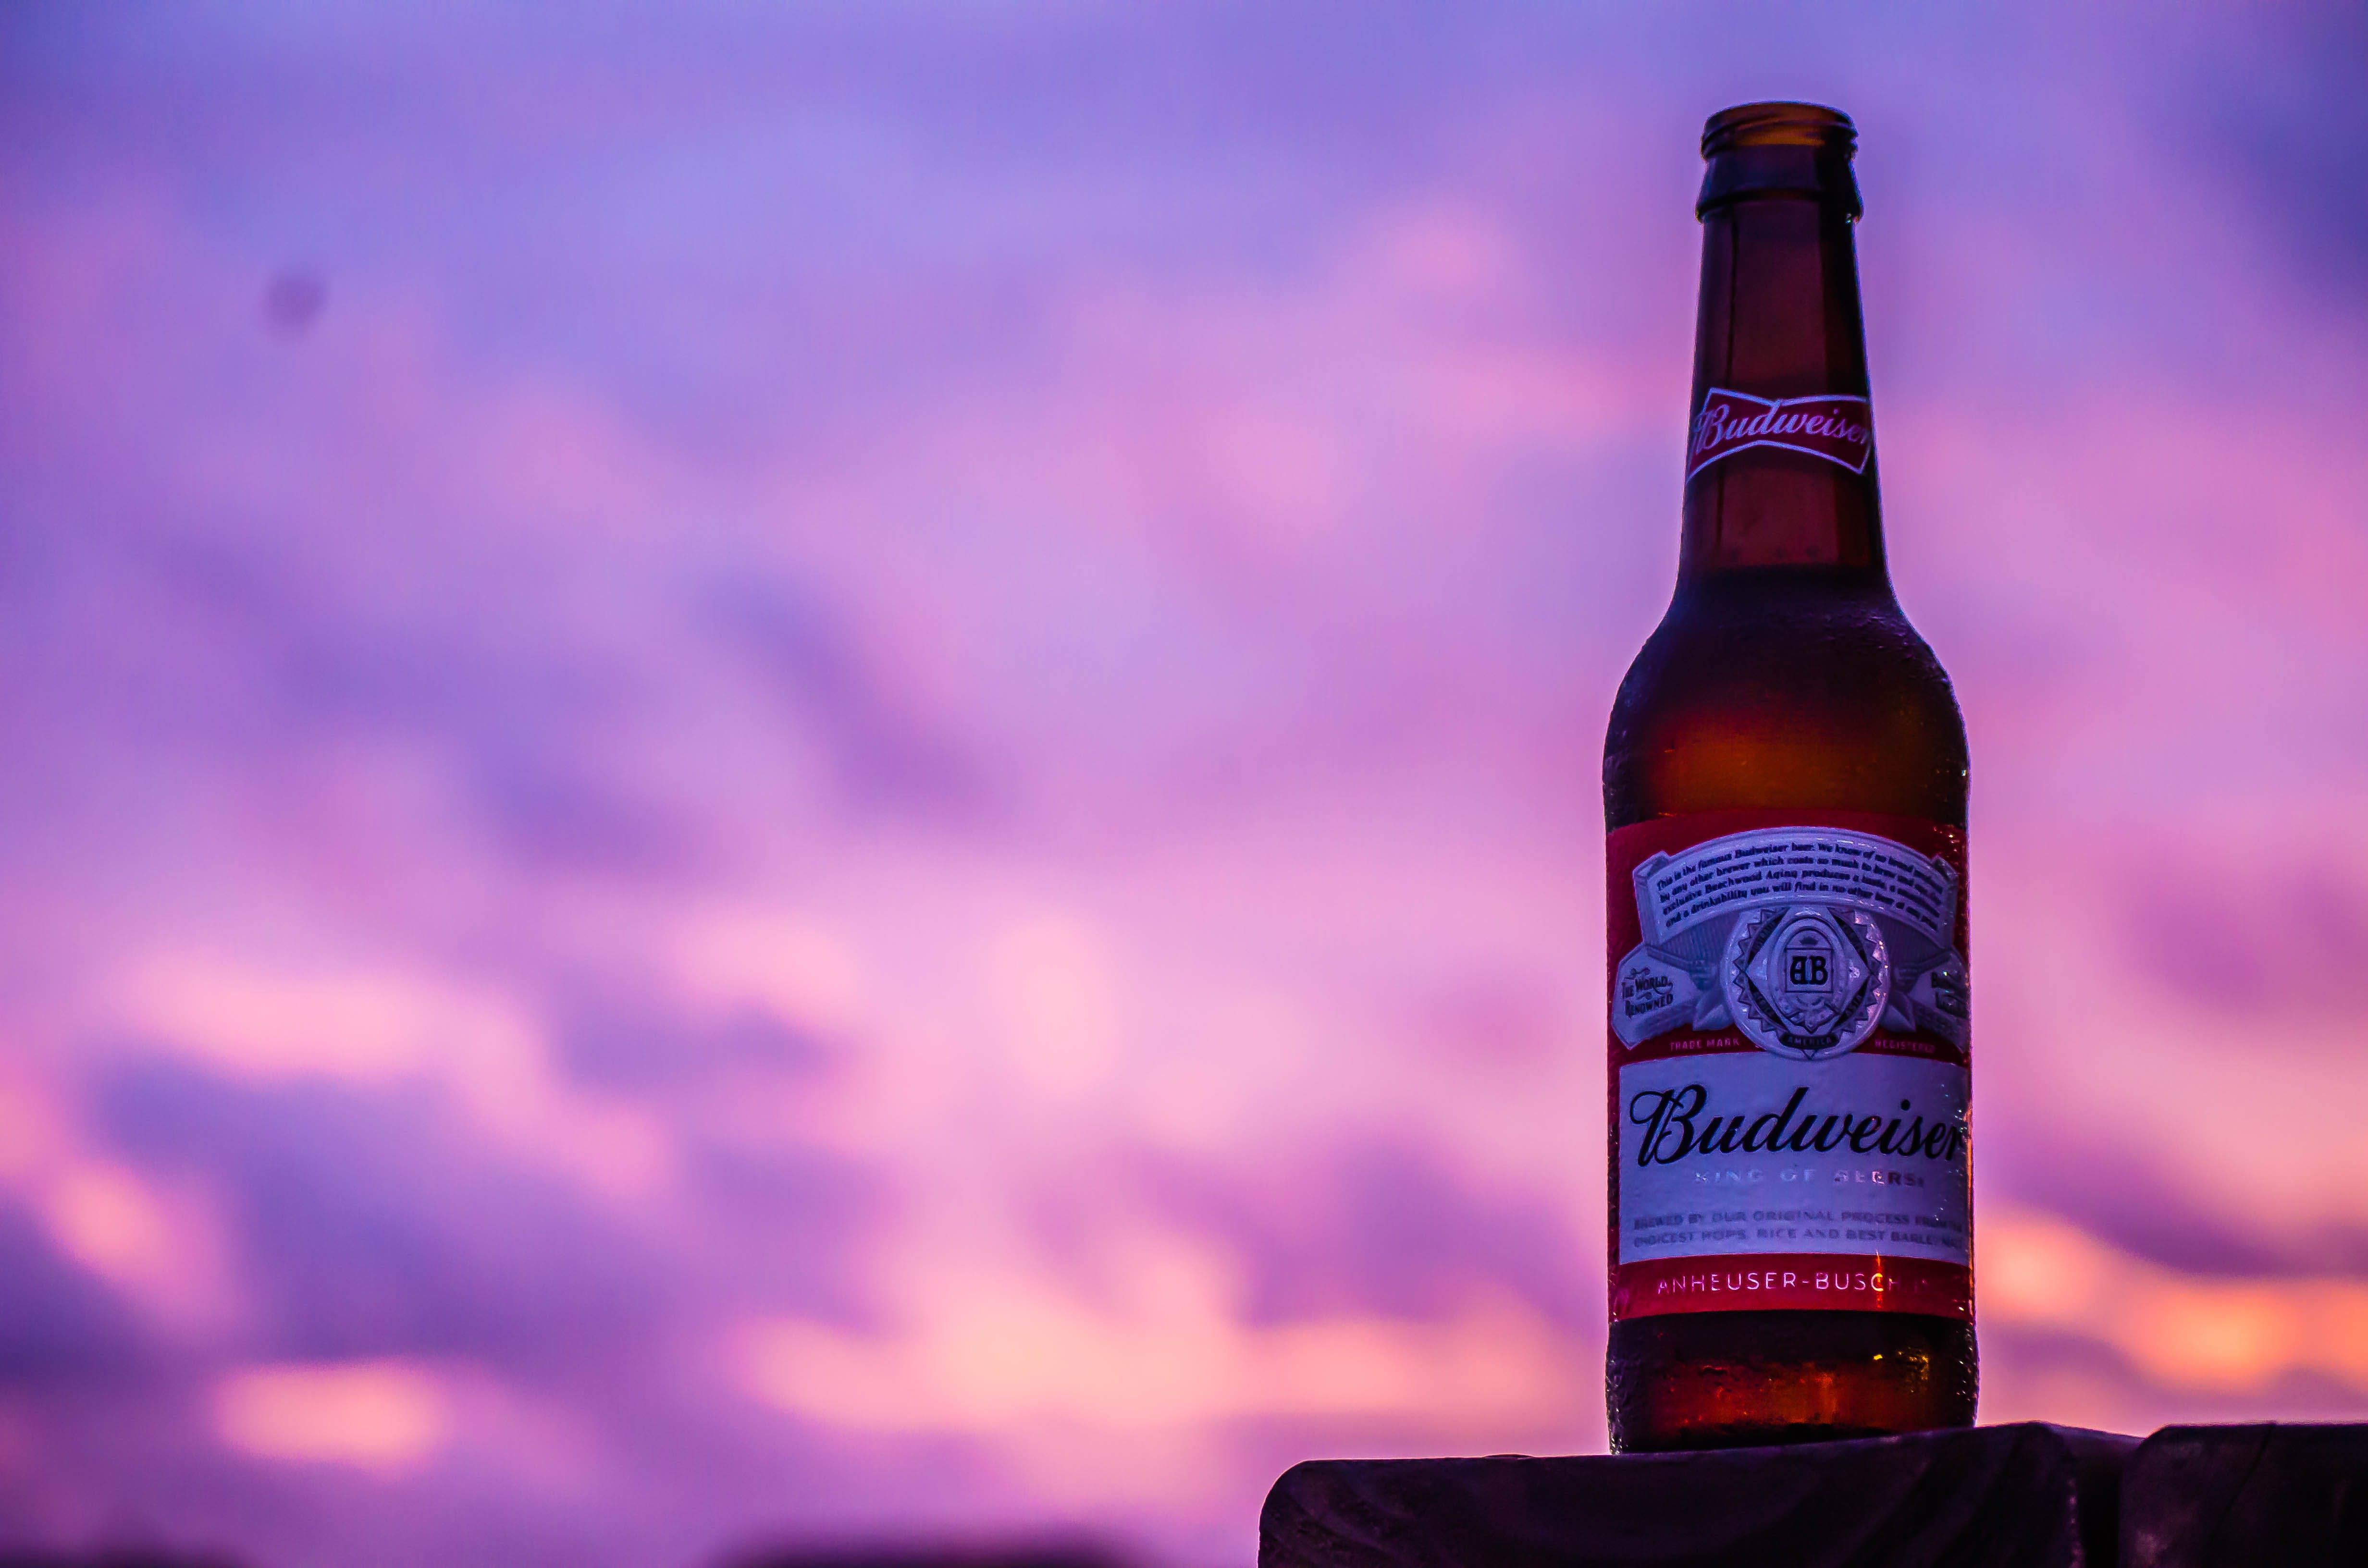 Free stock photo of beer bottle